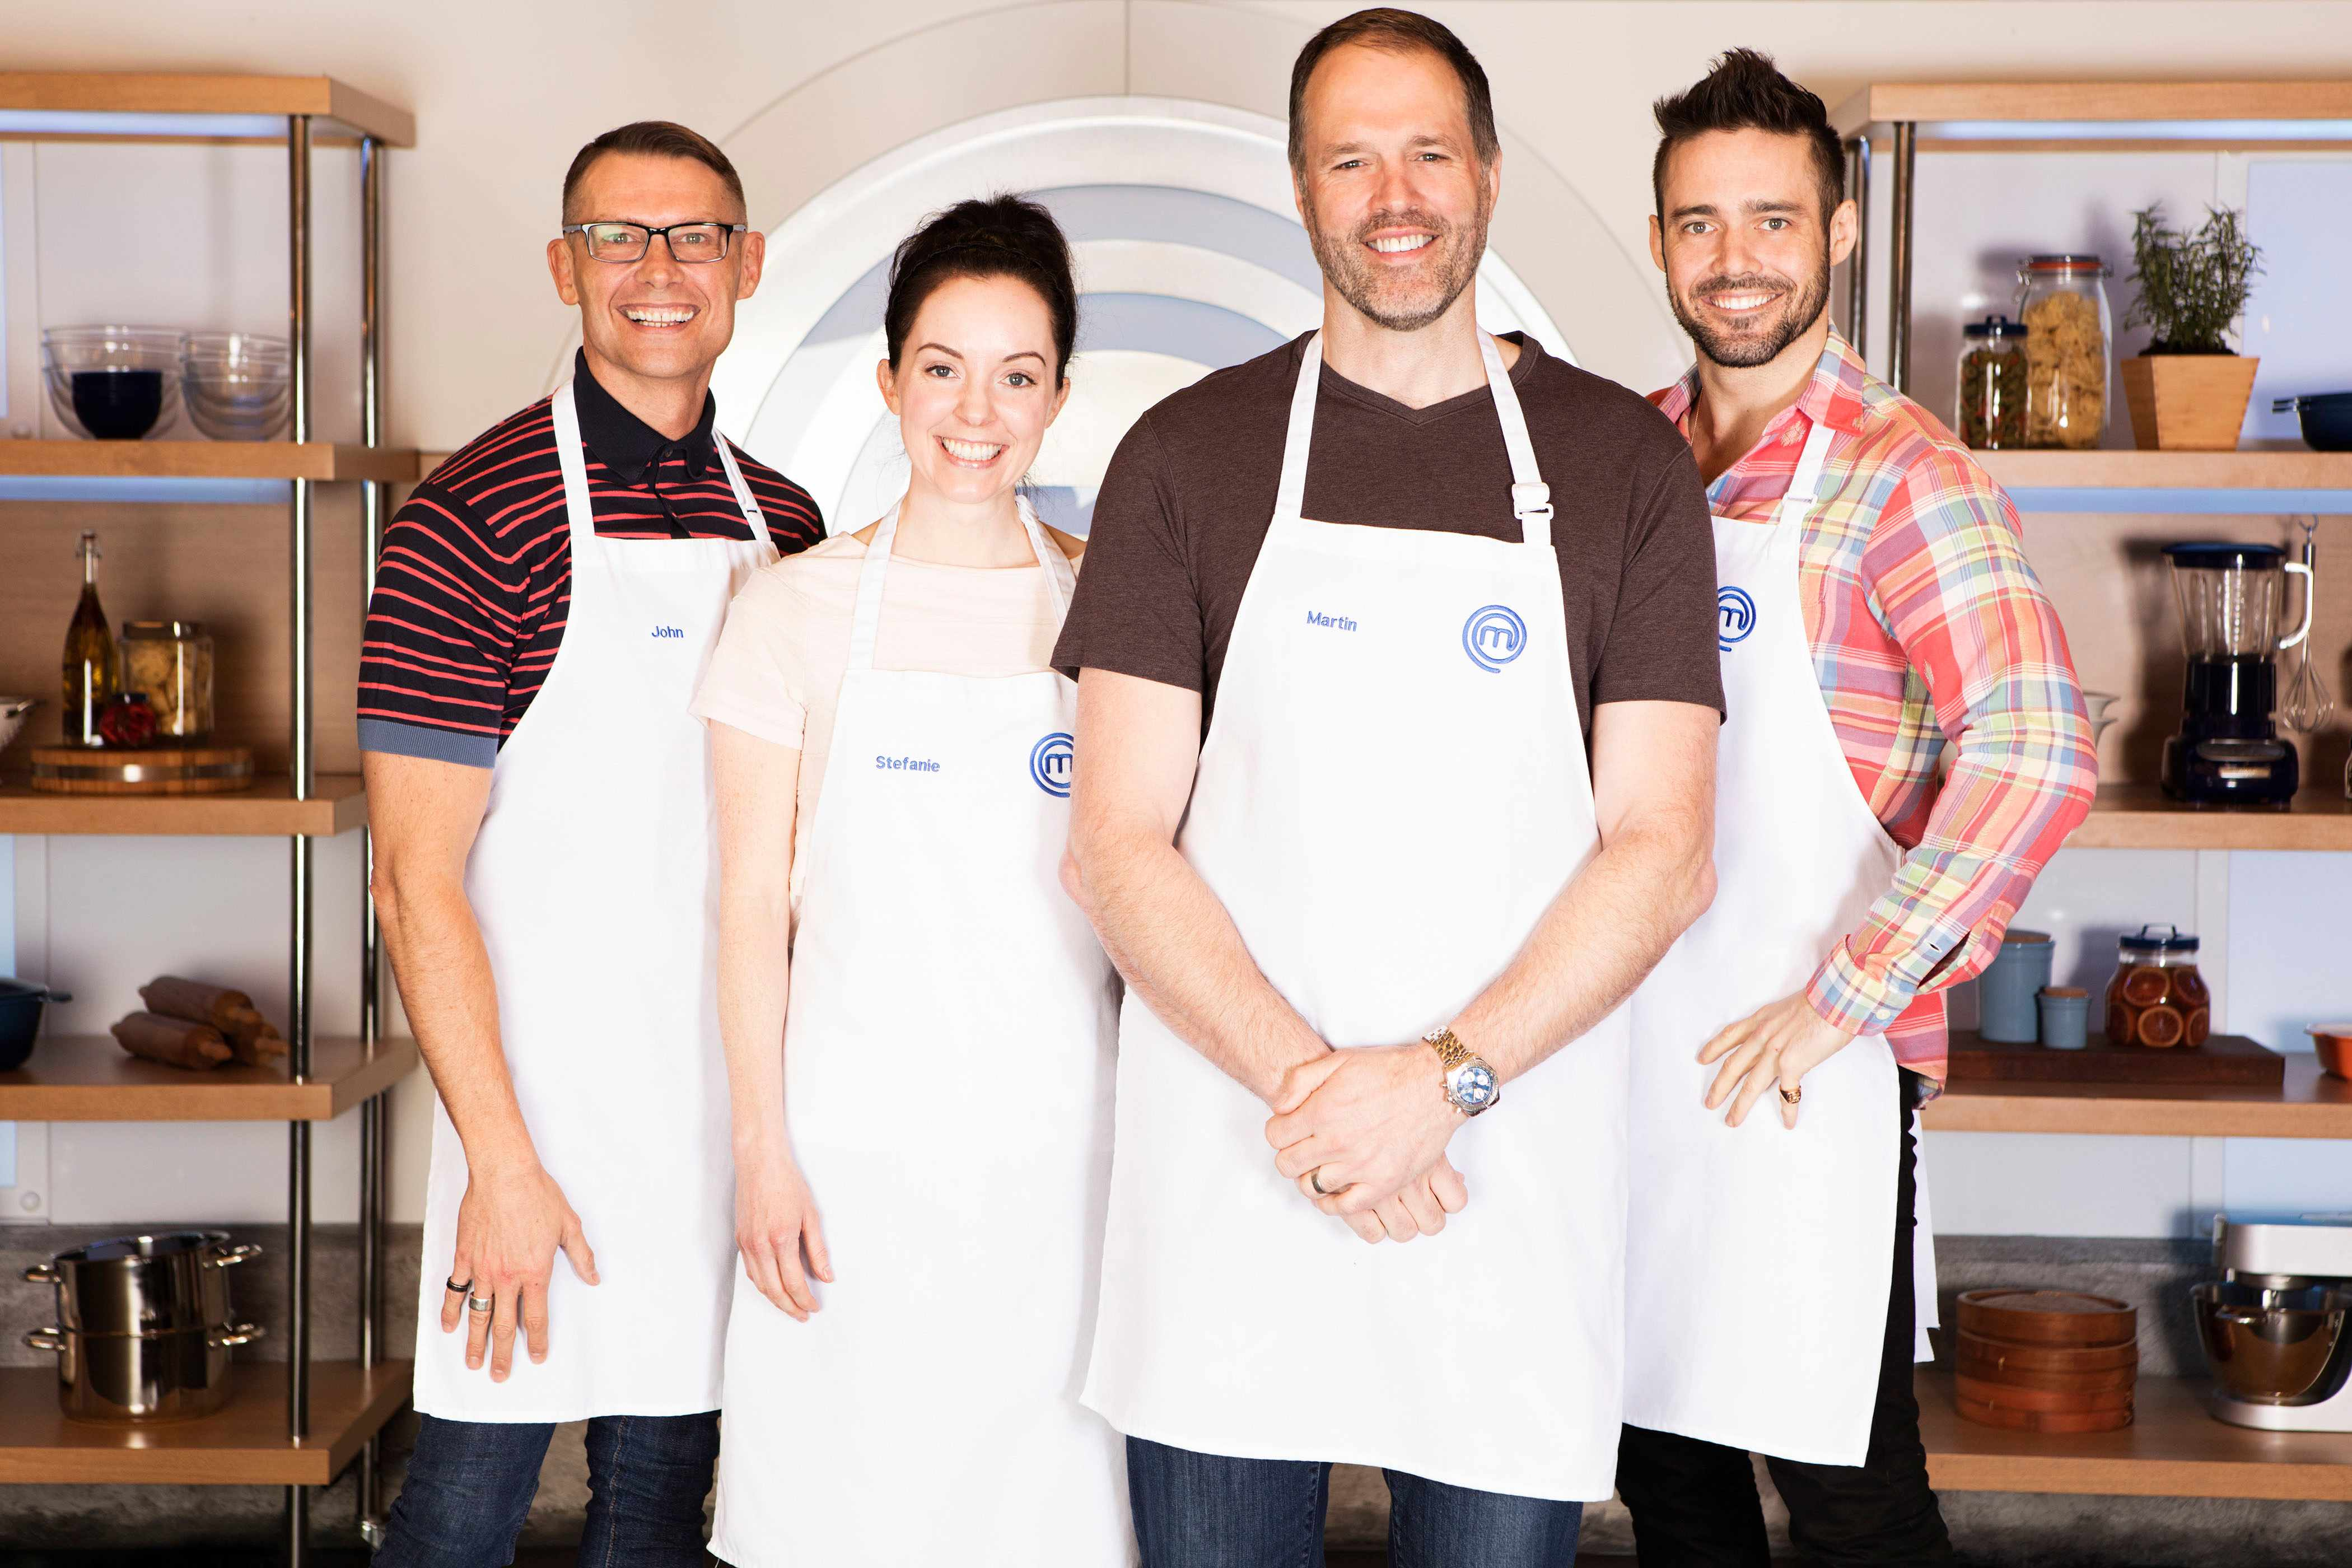 Programme Name: Celebrity Masterchef S13 - TX: n/a - Episode: n/a (No. The Final 4) - Picture Shows: **STRICTLY EMBARGOED UNTIL 22:01 HRS ON FRIDAY 21ST SEPTEMBER 2018**  The Final 4 John Partridge, Stef Reid, Martin Bayfield, Spencer Matthews - (C) Shine TV Ltd - Photographer: Production